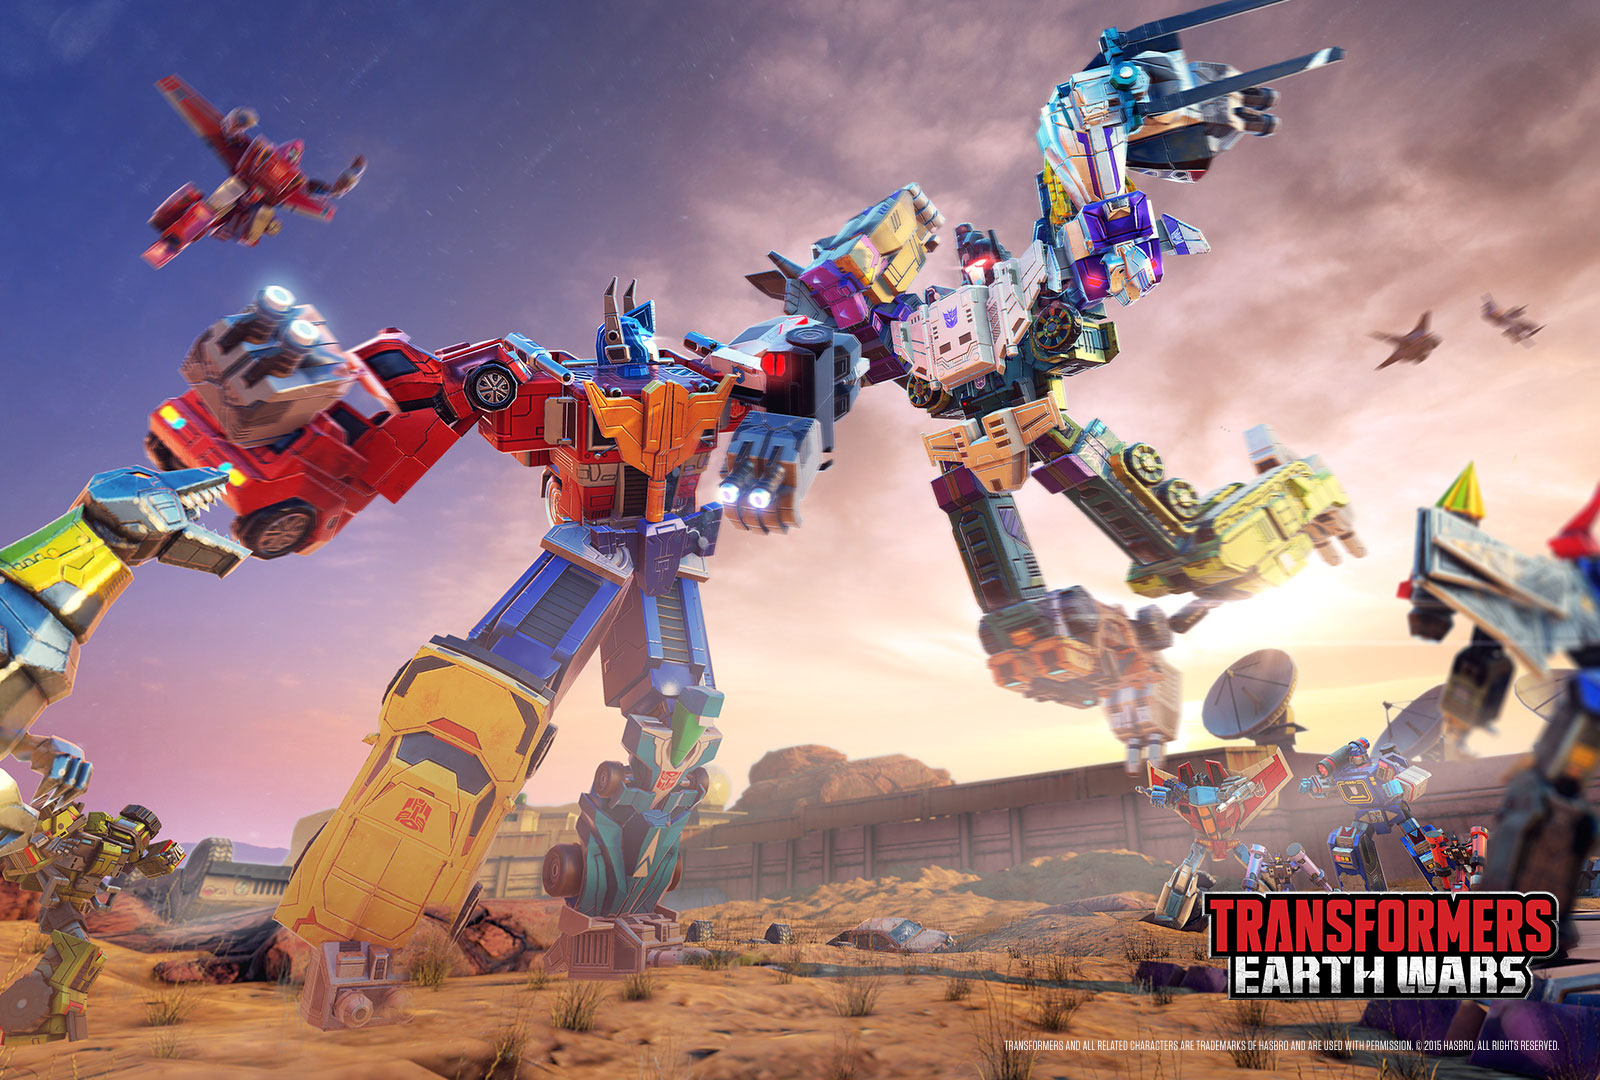 Wallpapers - Transformers: Earth Wars